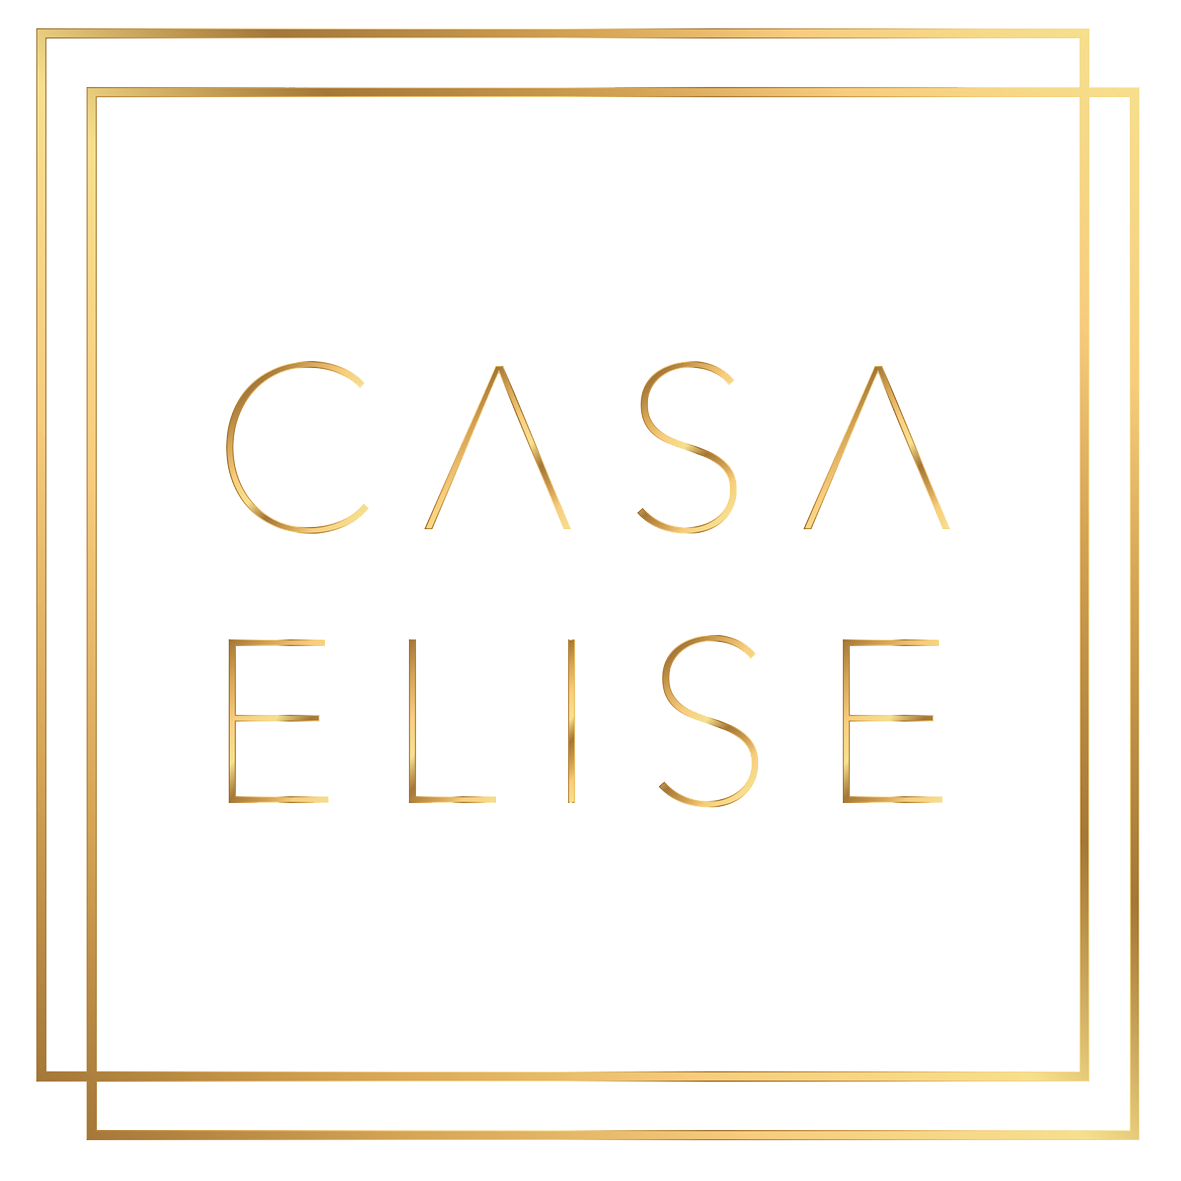 Casa Elisa - Schoonheidsinstituut, Privé welness, Bed & Breakfast, Kapsalon